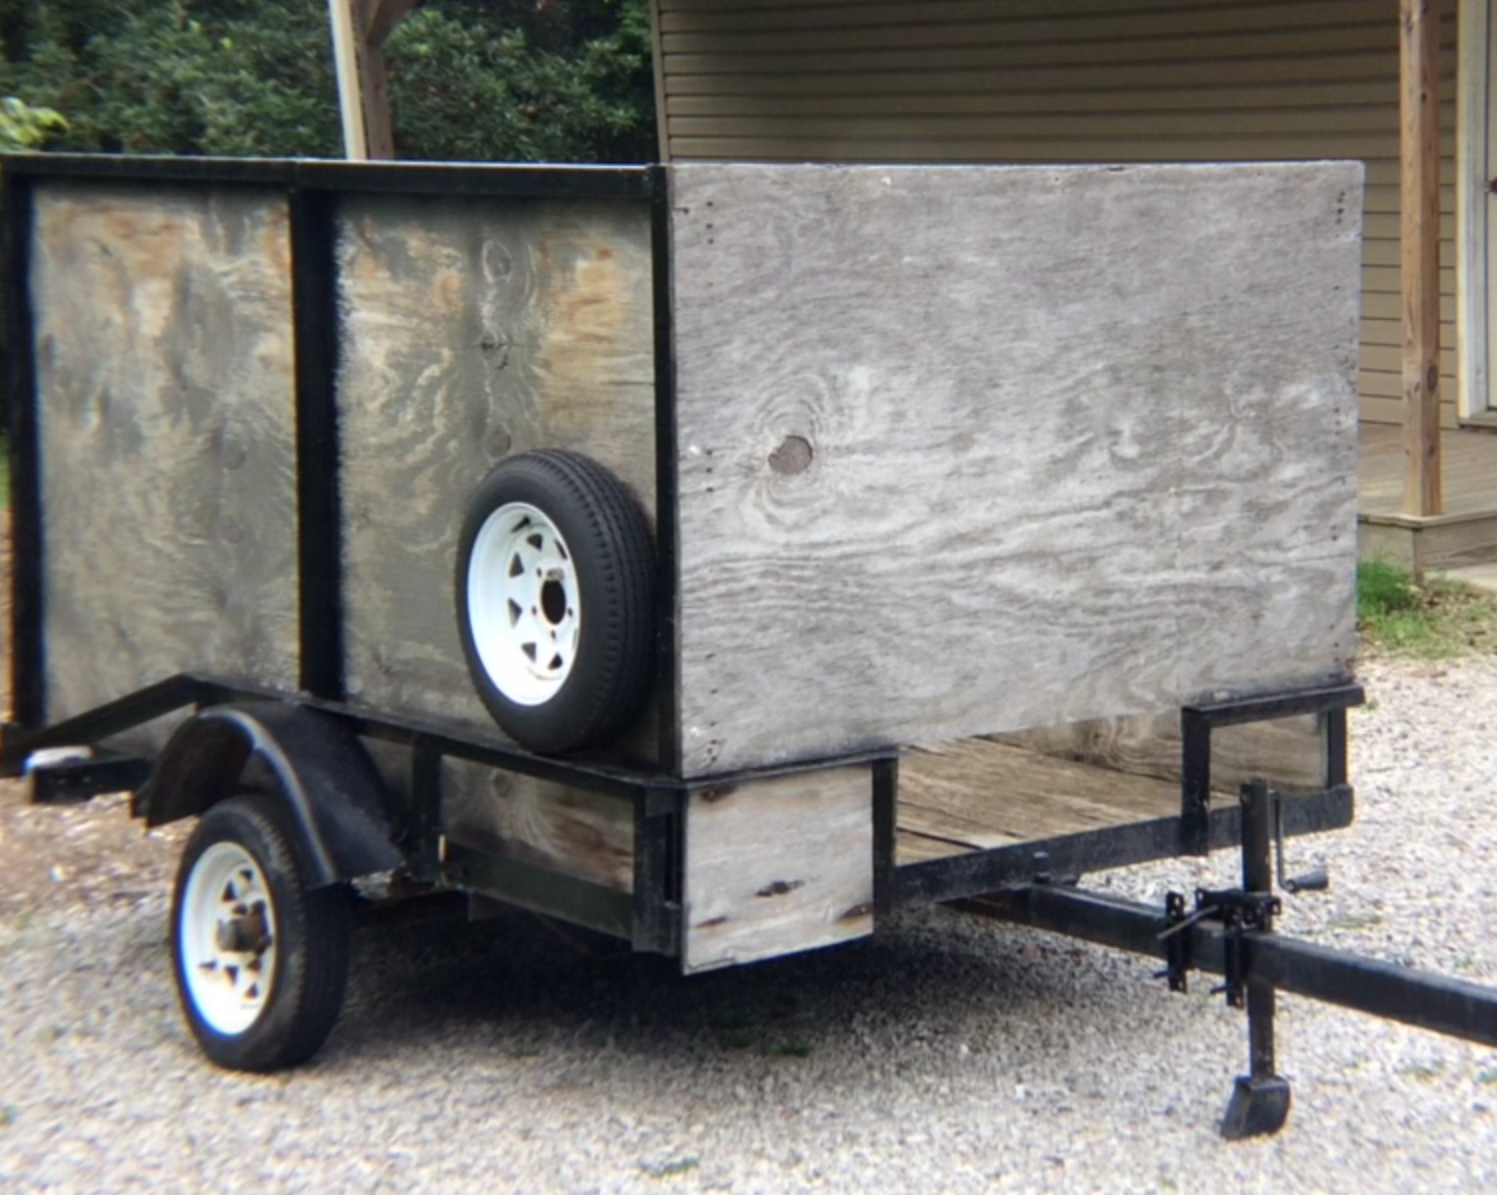 Ck By The Thought Of Having A Home Made Utility Trailer For Hauling And Storing Our Camping Gear